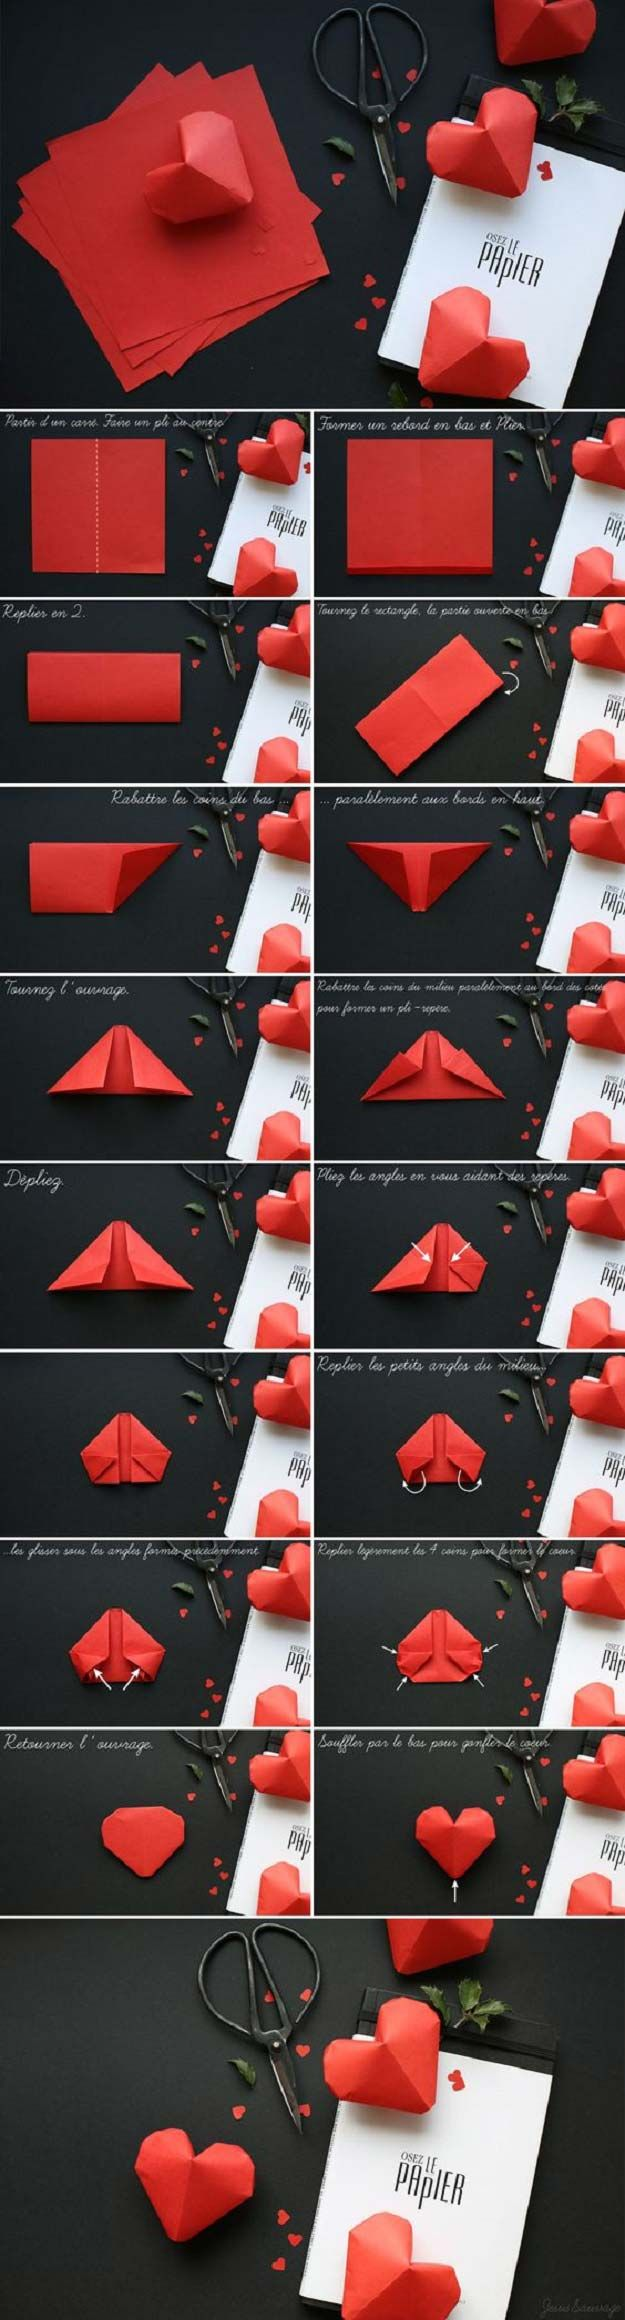 40 Best Diy Origami Projects To Keep Your Entertained Today Dengan Gambar Origami Hati Valentine Tutorial Origami